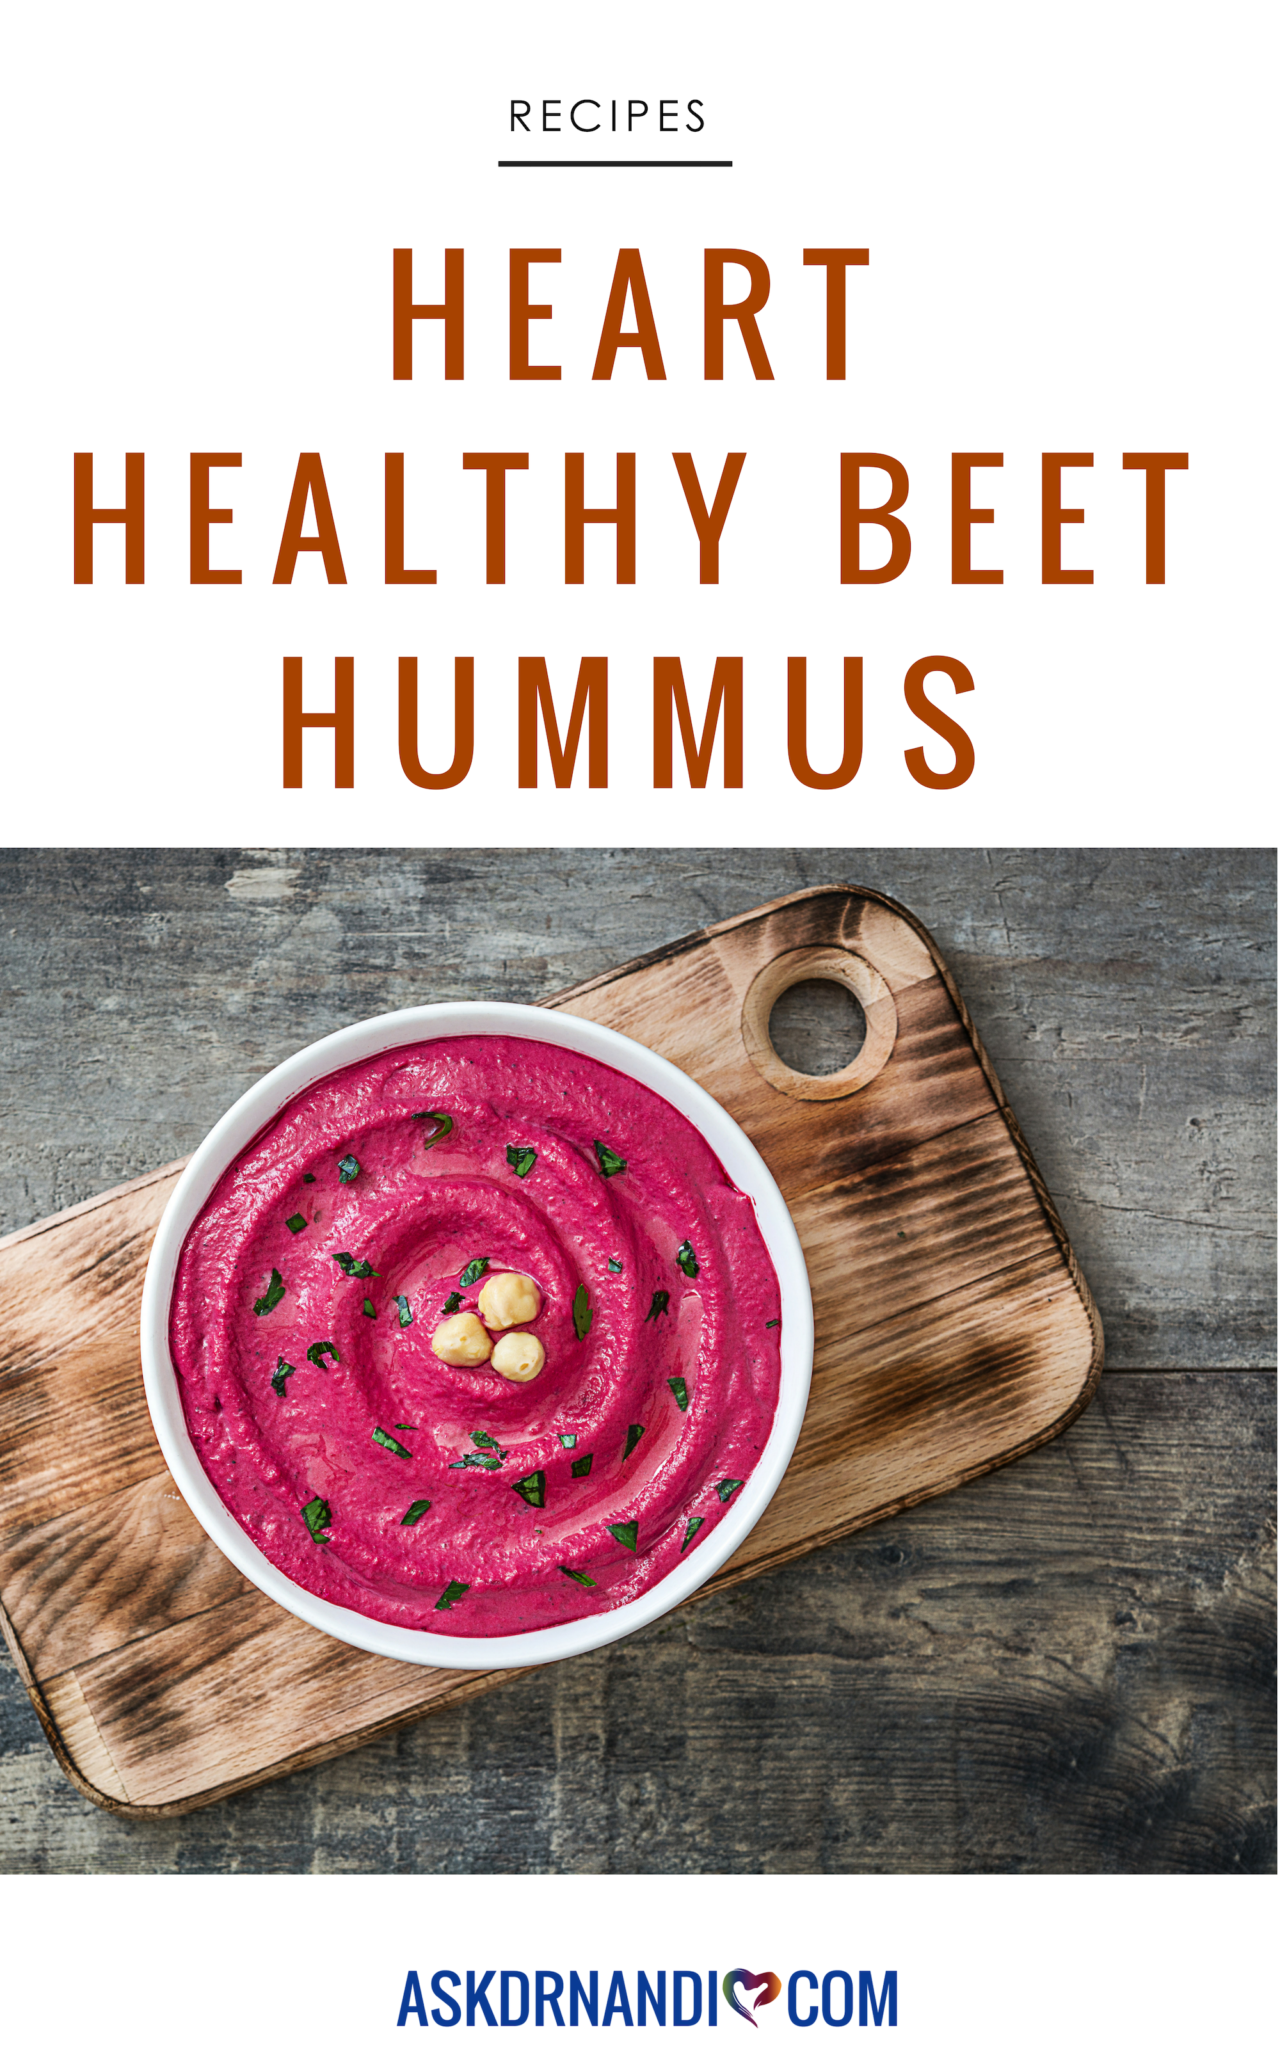 Take traditional hummus up a notch with this beautiful Beet Hummus & Goat Cheese recipe!